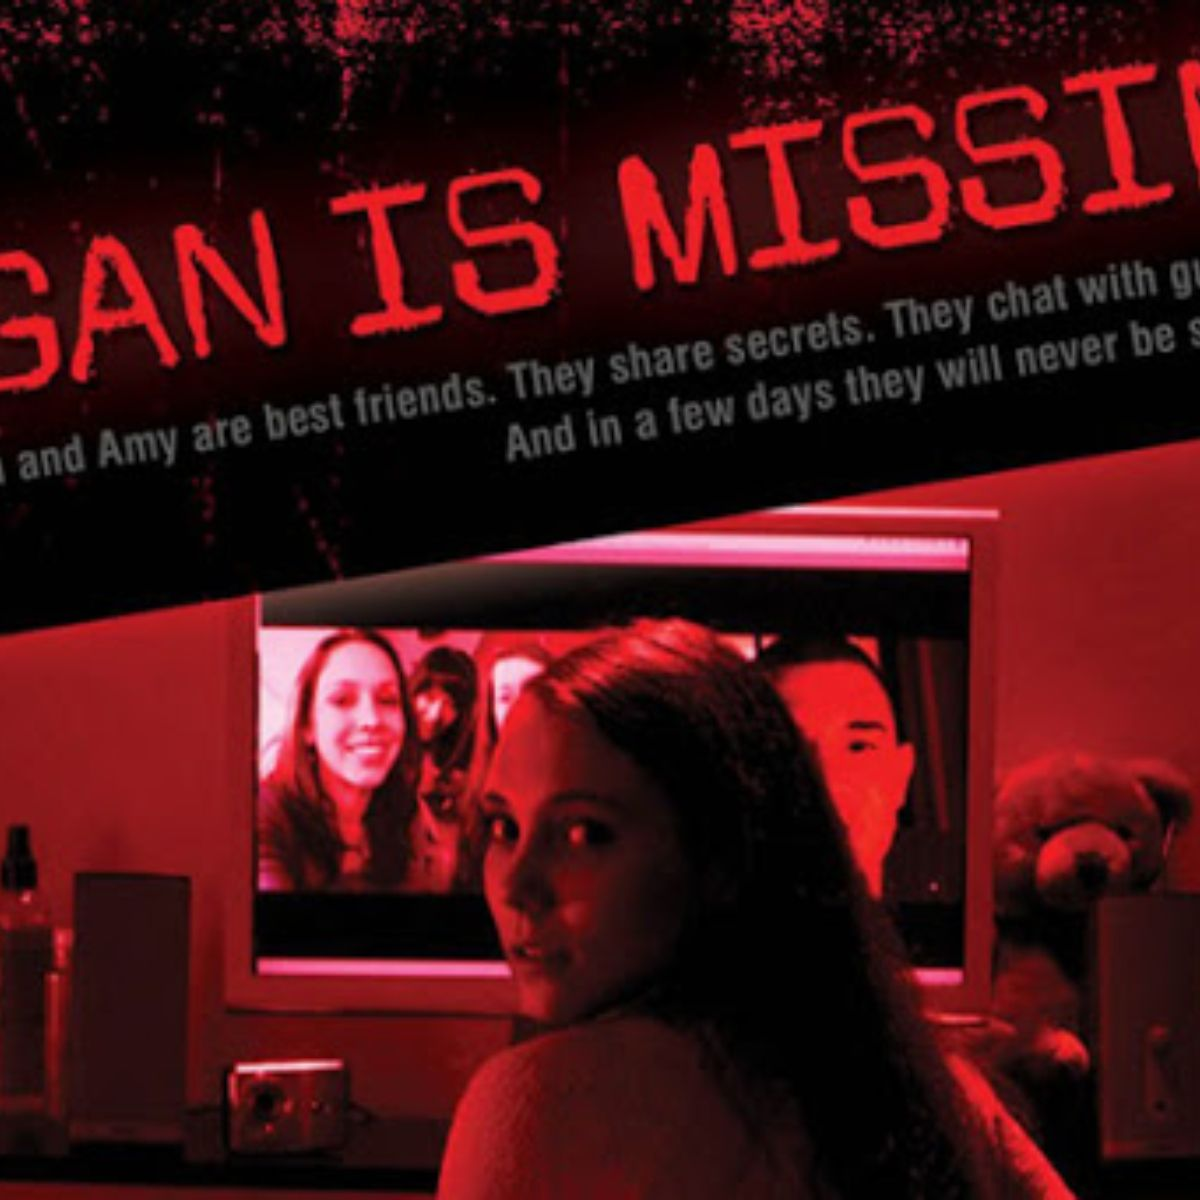 Megan Is Missing S Director Michael Goi Warns Viewers To Not Do This While Watching The Viral Horror Movie Horror Movies Movies Director